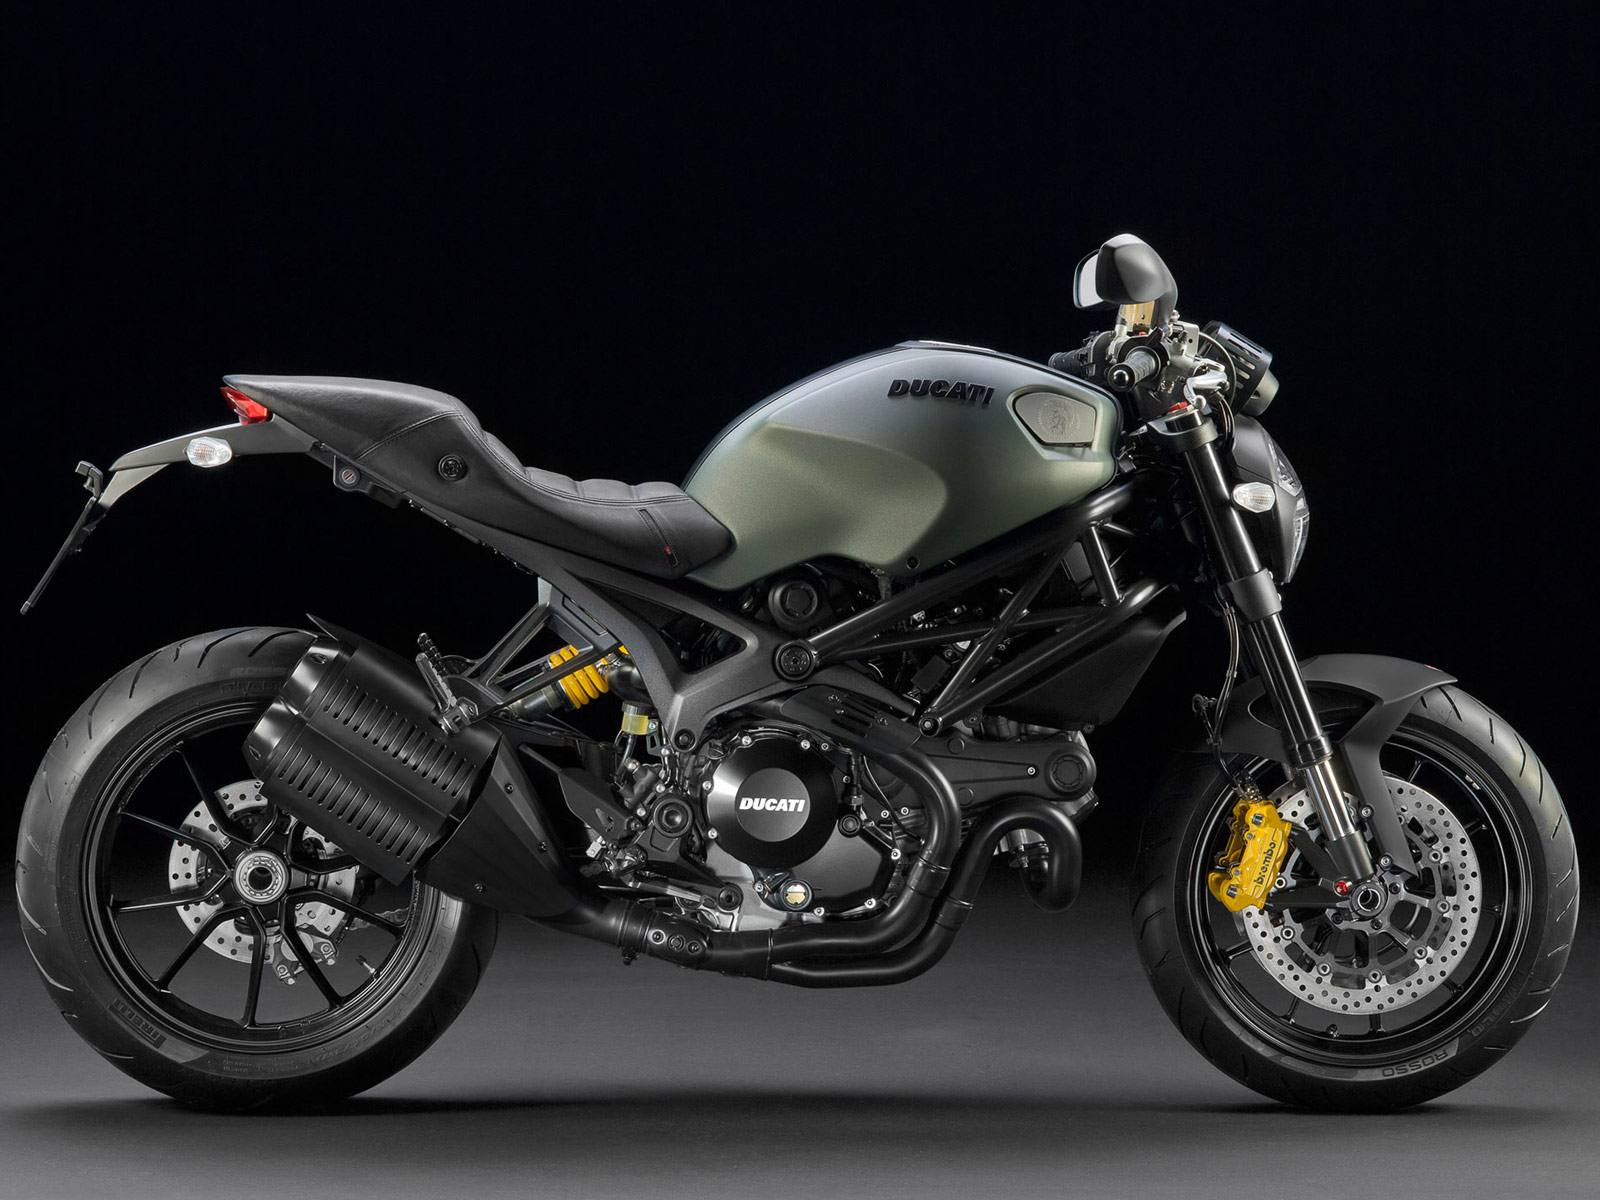 2013 ducati monster 1100 evo diesel motorcycle photos and. Black Bedroom Furniture Sets. Home Design Ideas